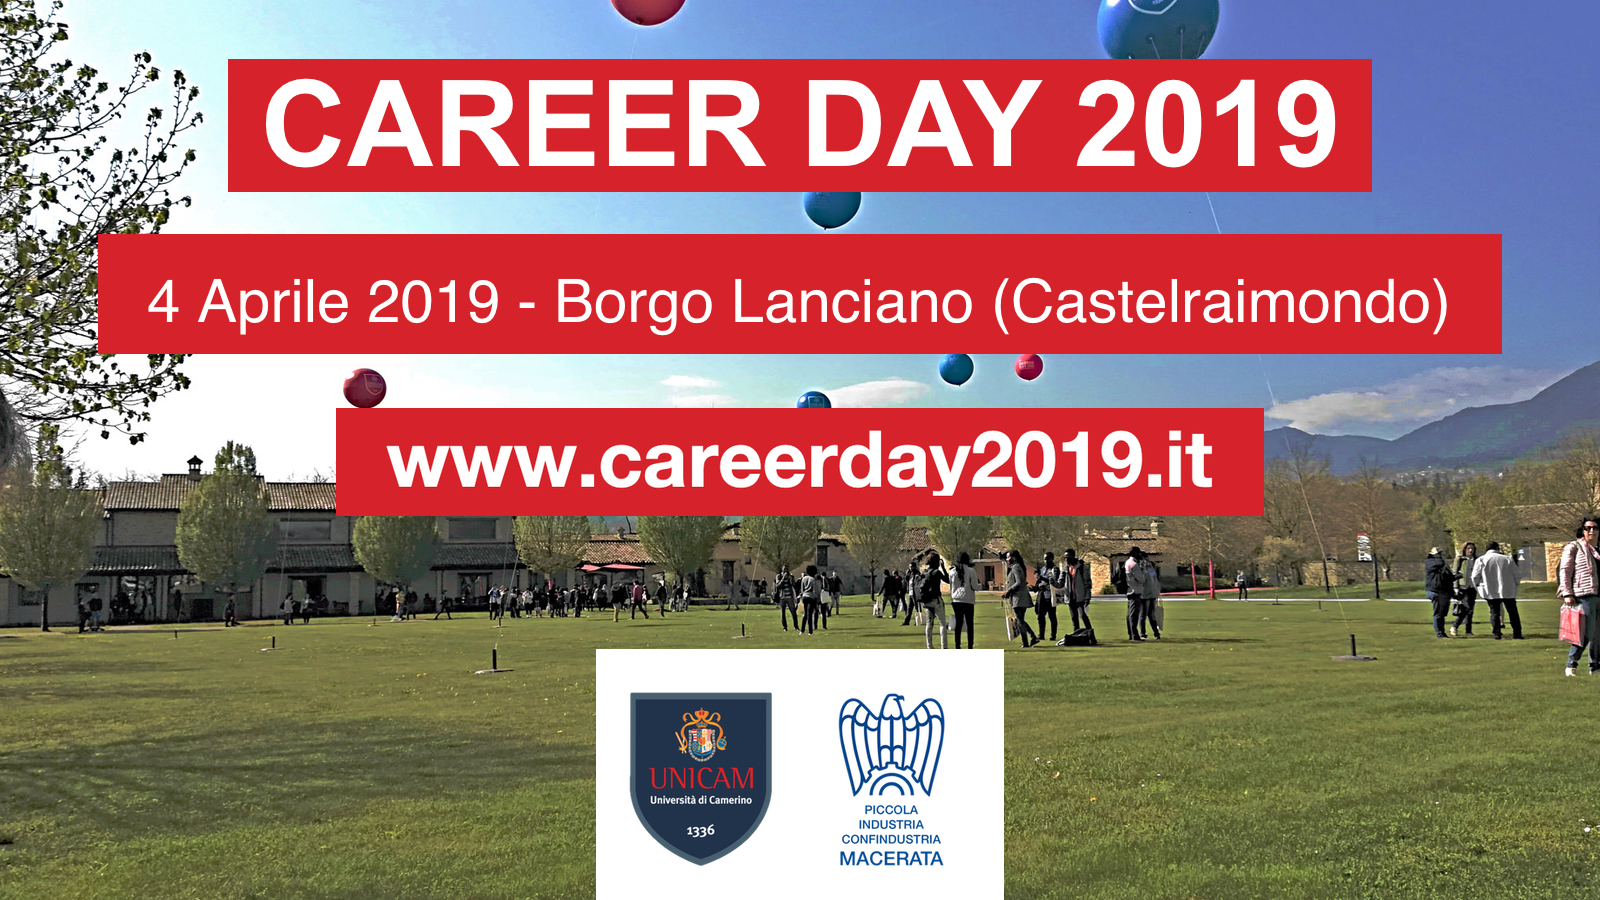 SERVIZI PER L'EDUCATIONAL - Career Day UNICAM 2019: una partnership sempre più solida